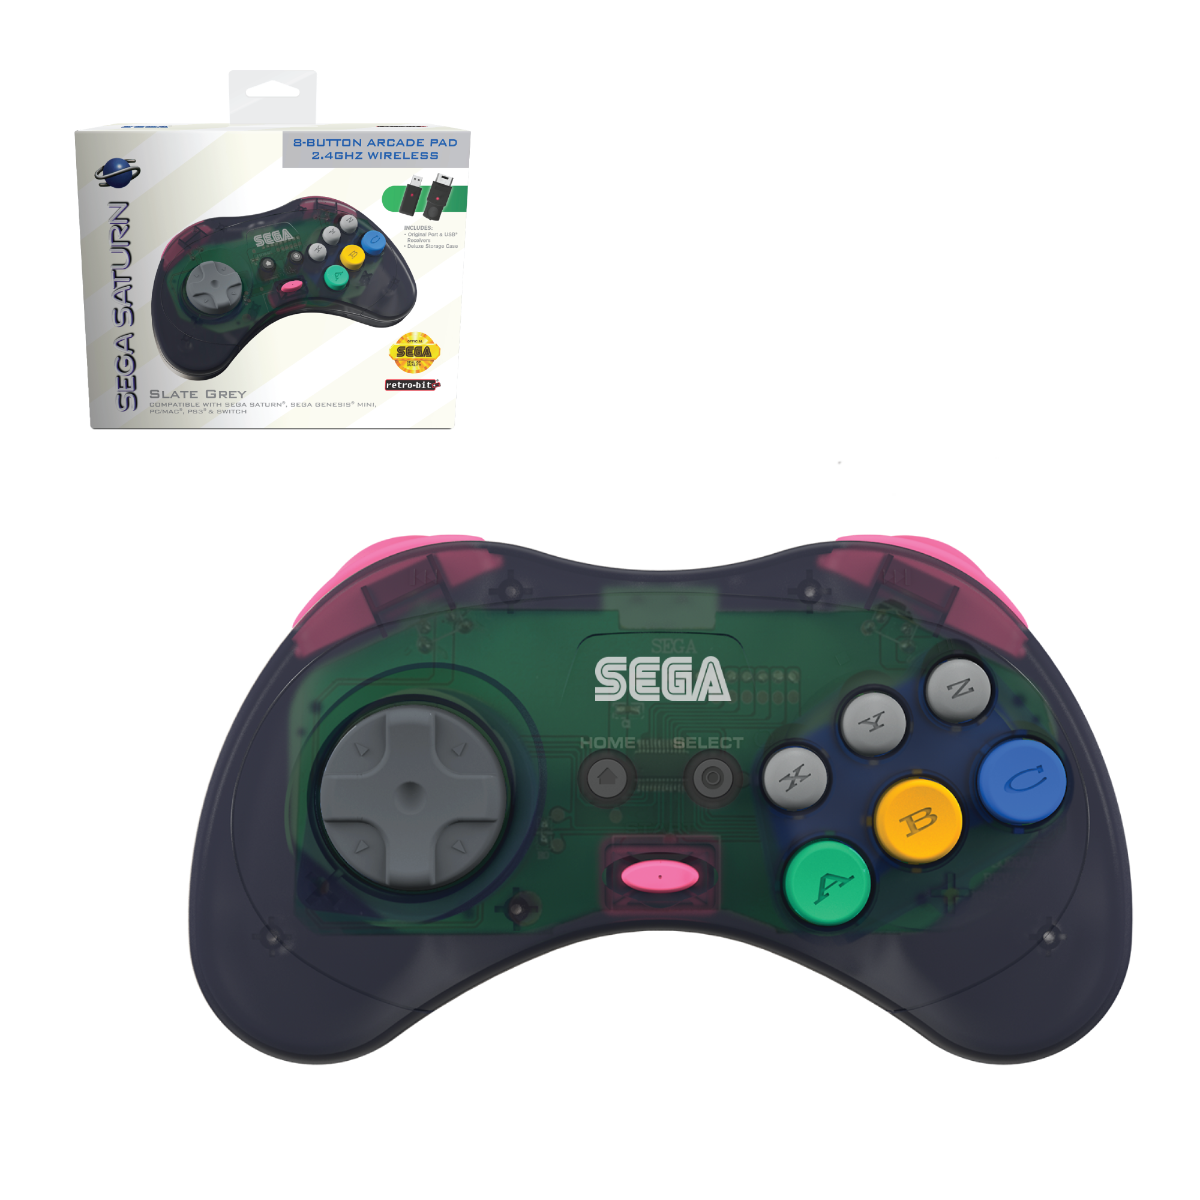 SEGA, Saturn, 8-Button, Arcade Pad, Controller, 2.4 GHz Wireless, USB, PC, Mac, PS3, Android, Genesis Mini, Switch, Slate Grey